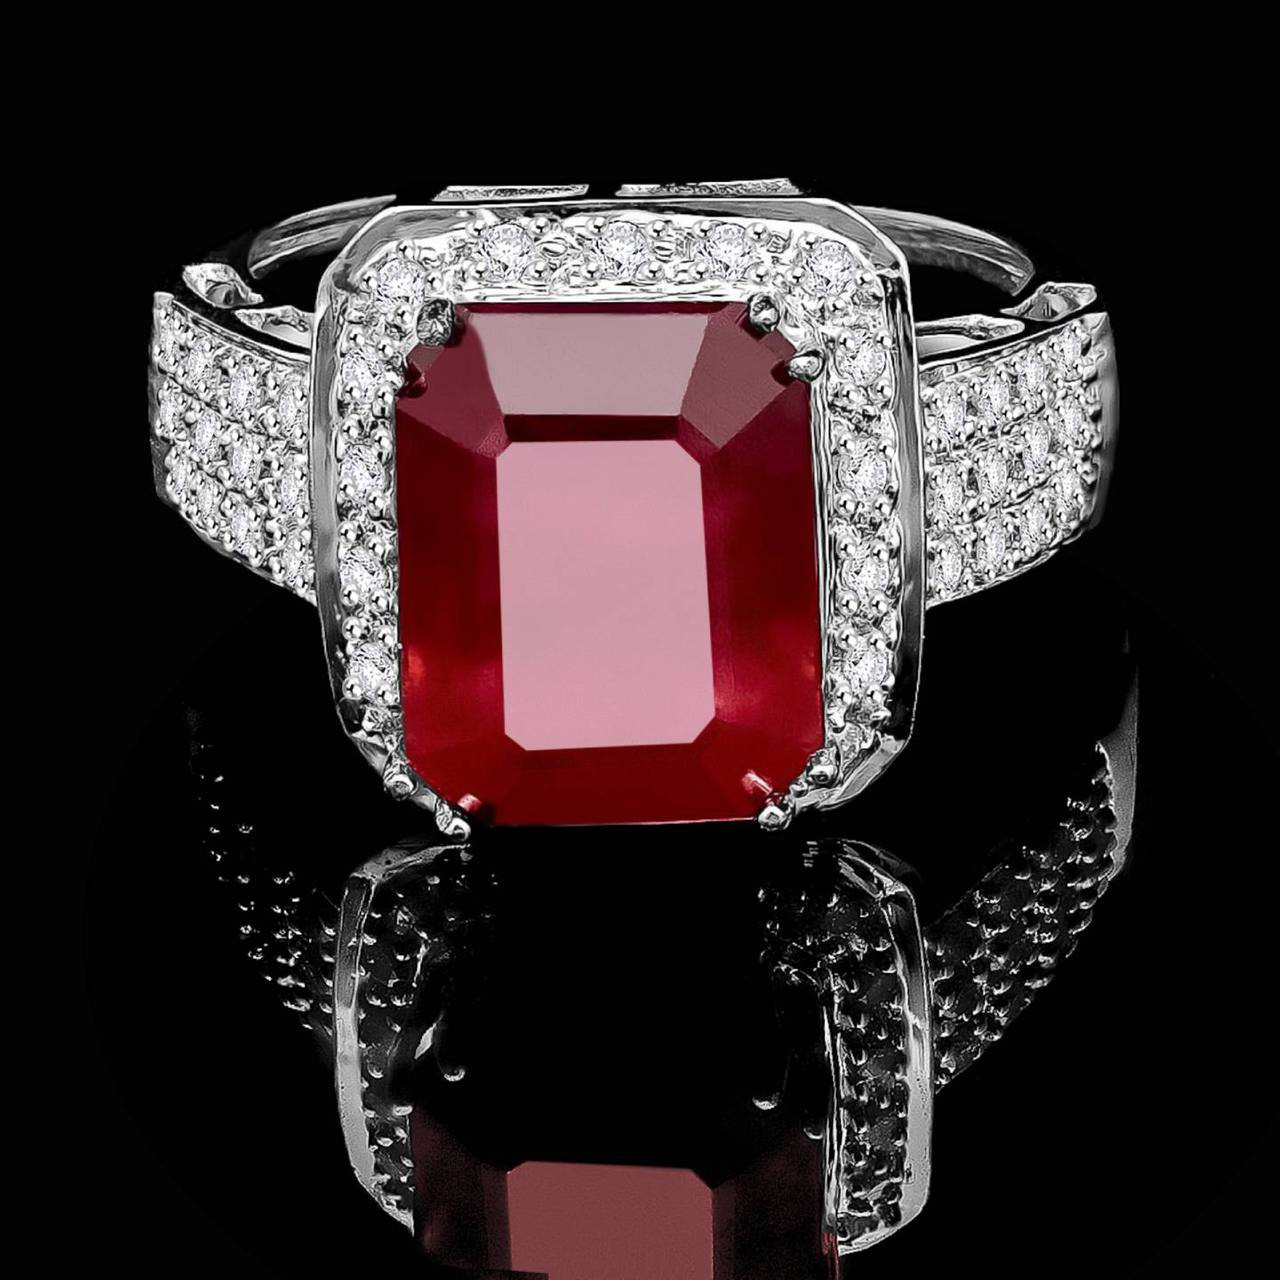 Red Ruby Ring  Bijoux Majesty. Jared Wedding Rings. Sunrise Watches. Best Jewelry. White Diamond Stud Earrings. Platinum Bands. Victoria Engagement Rings. Dance Earrings. Gents Gold Rings